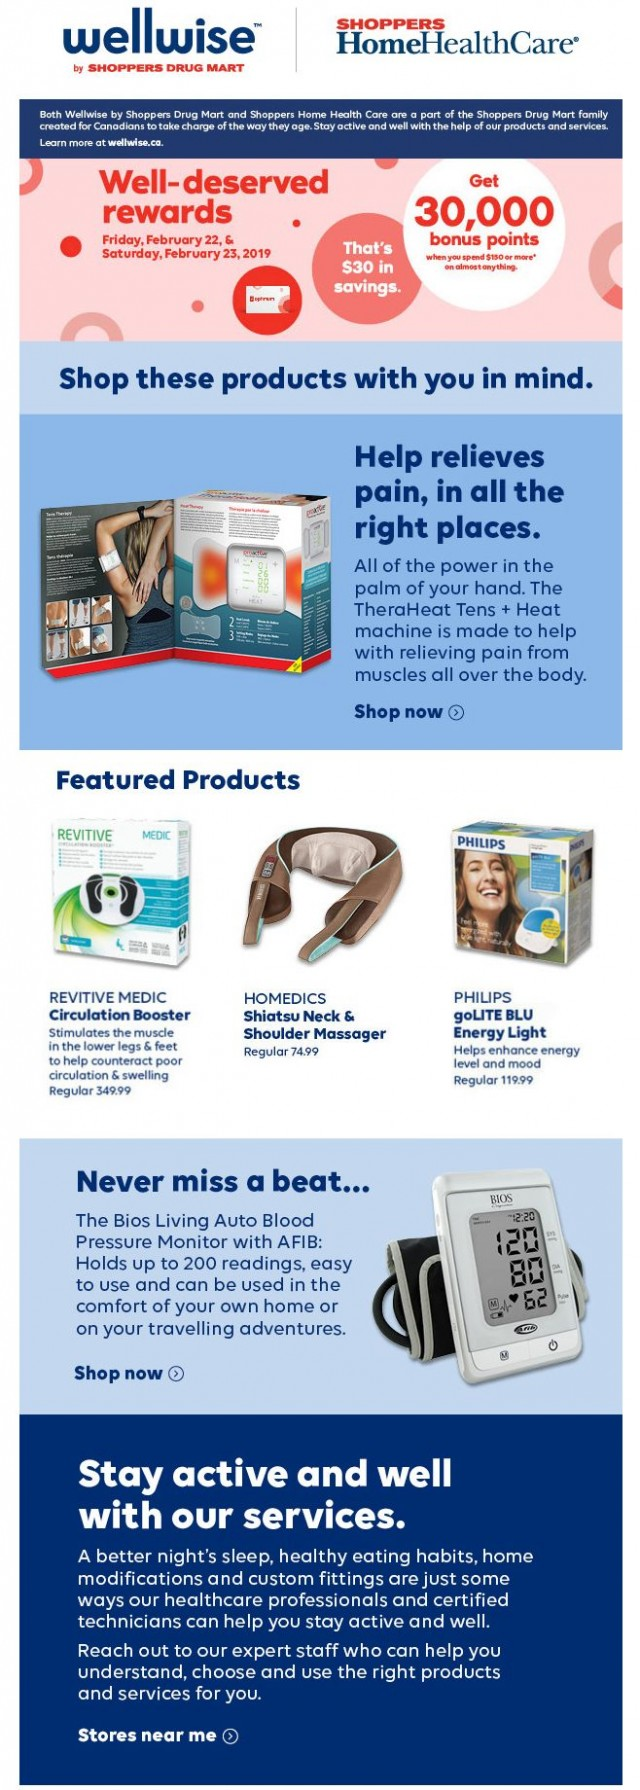 Coupon for: Wellwise by Shoppers Drug Mart - Well-deserved rewards!